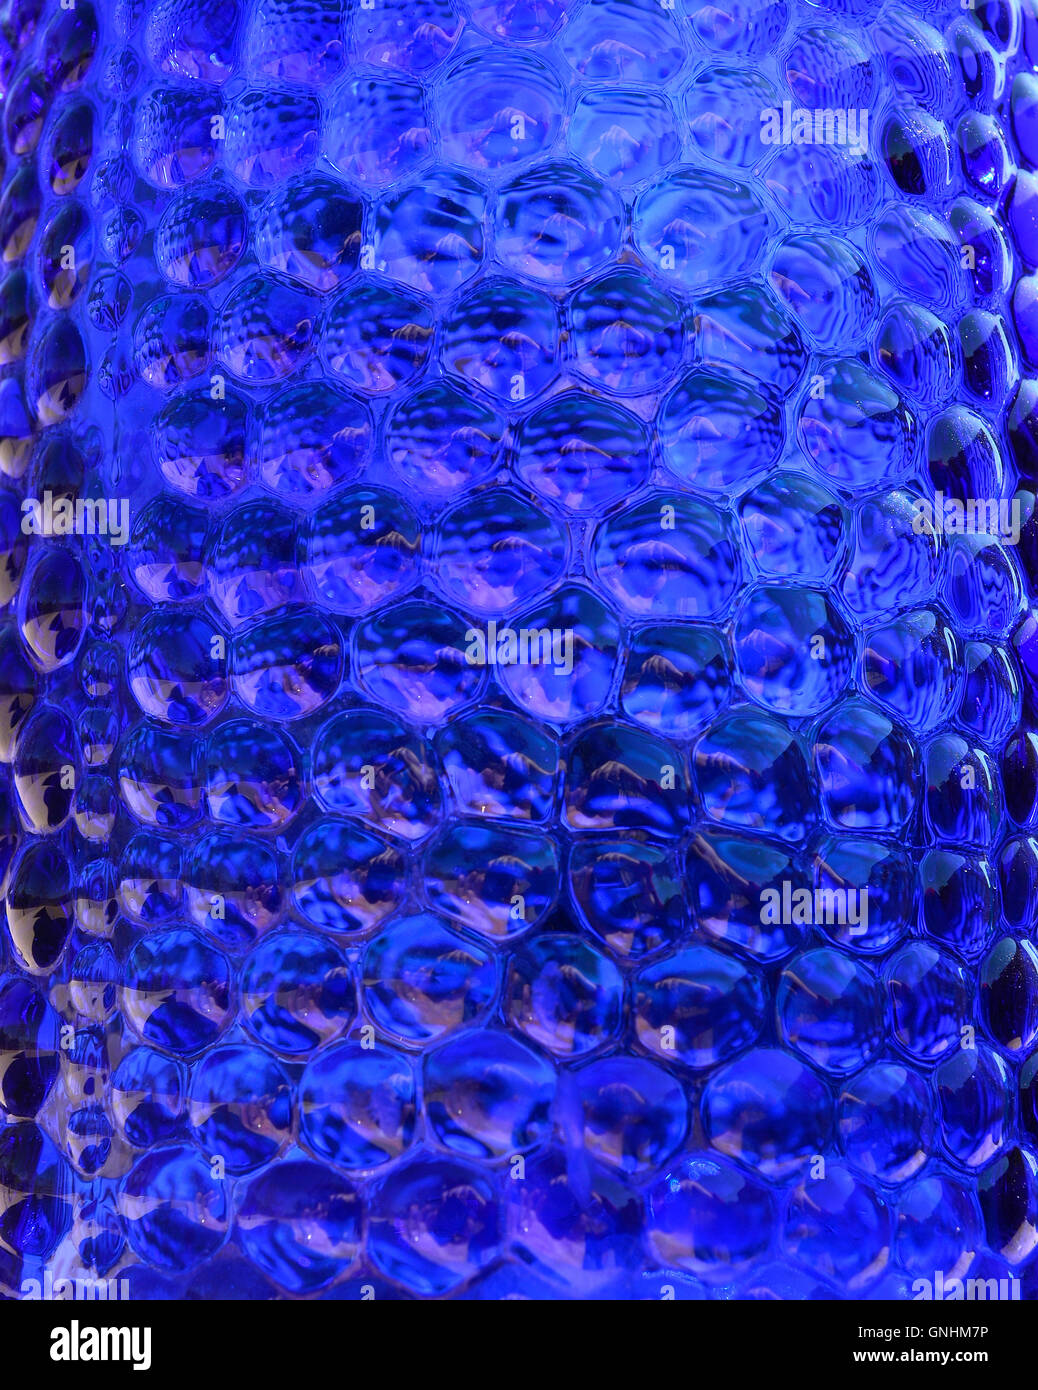 Dotted dark blue glass for backgrounds. Bubbly blue glass like liquid. - Stock Image